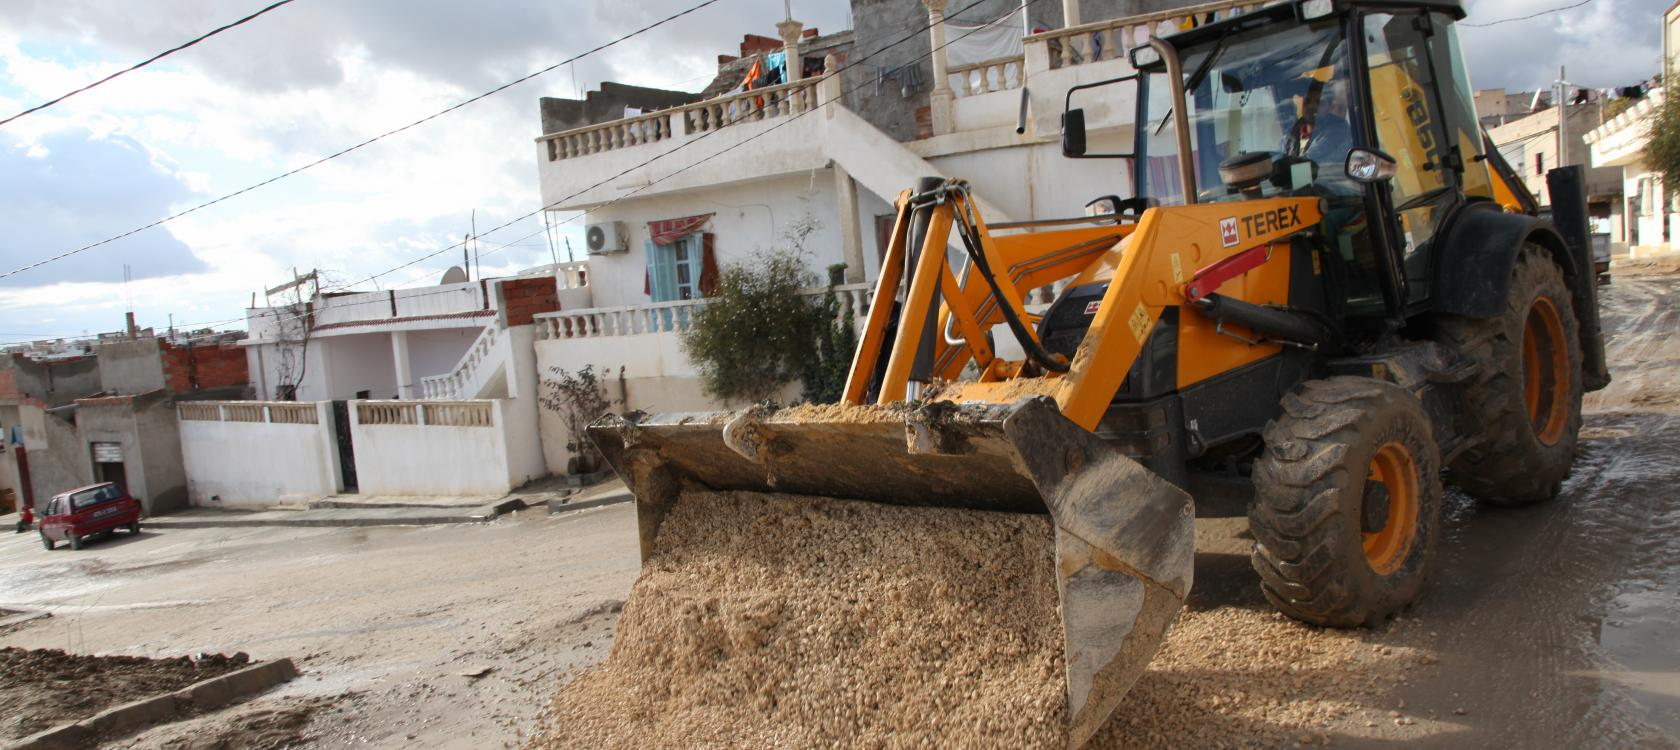 Tunisie, travaux, engin